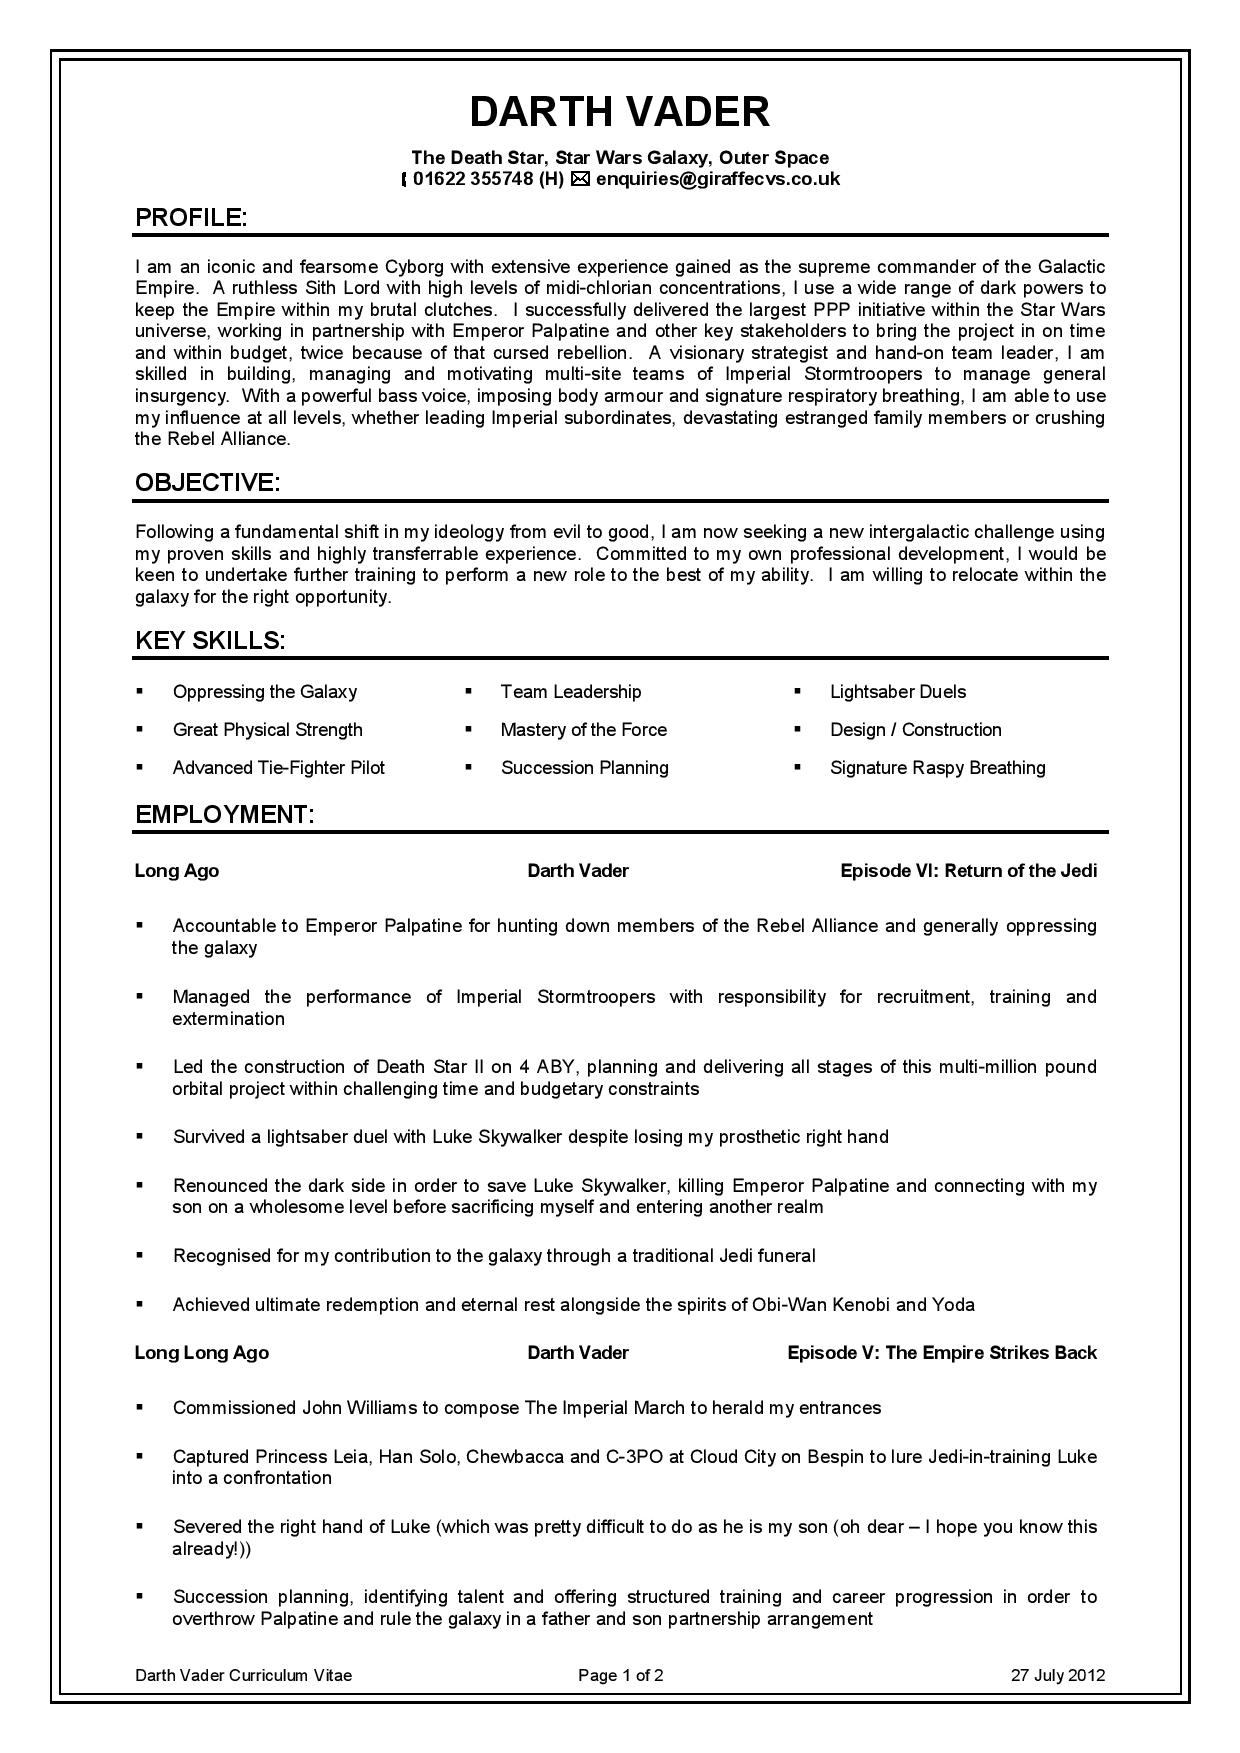 Darth Vader / Anakin Skywalker Cv Resume